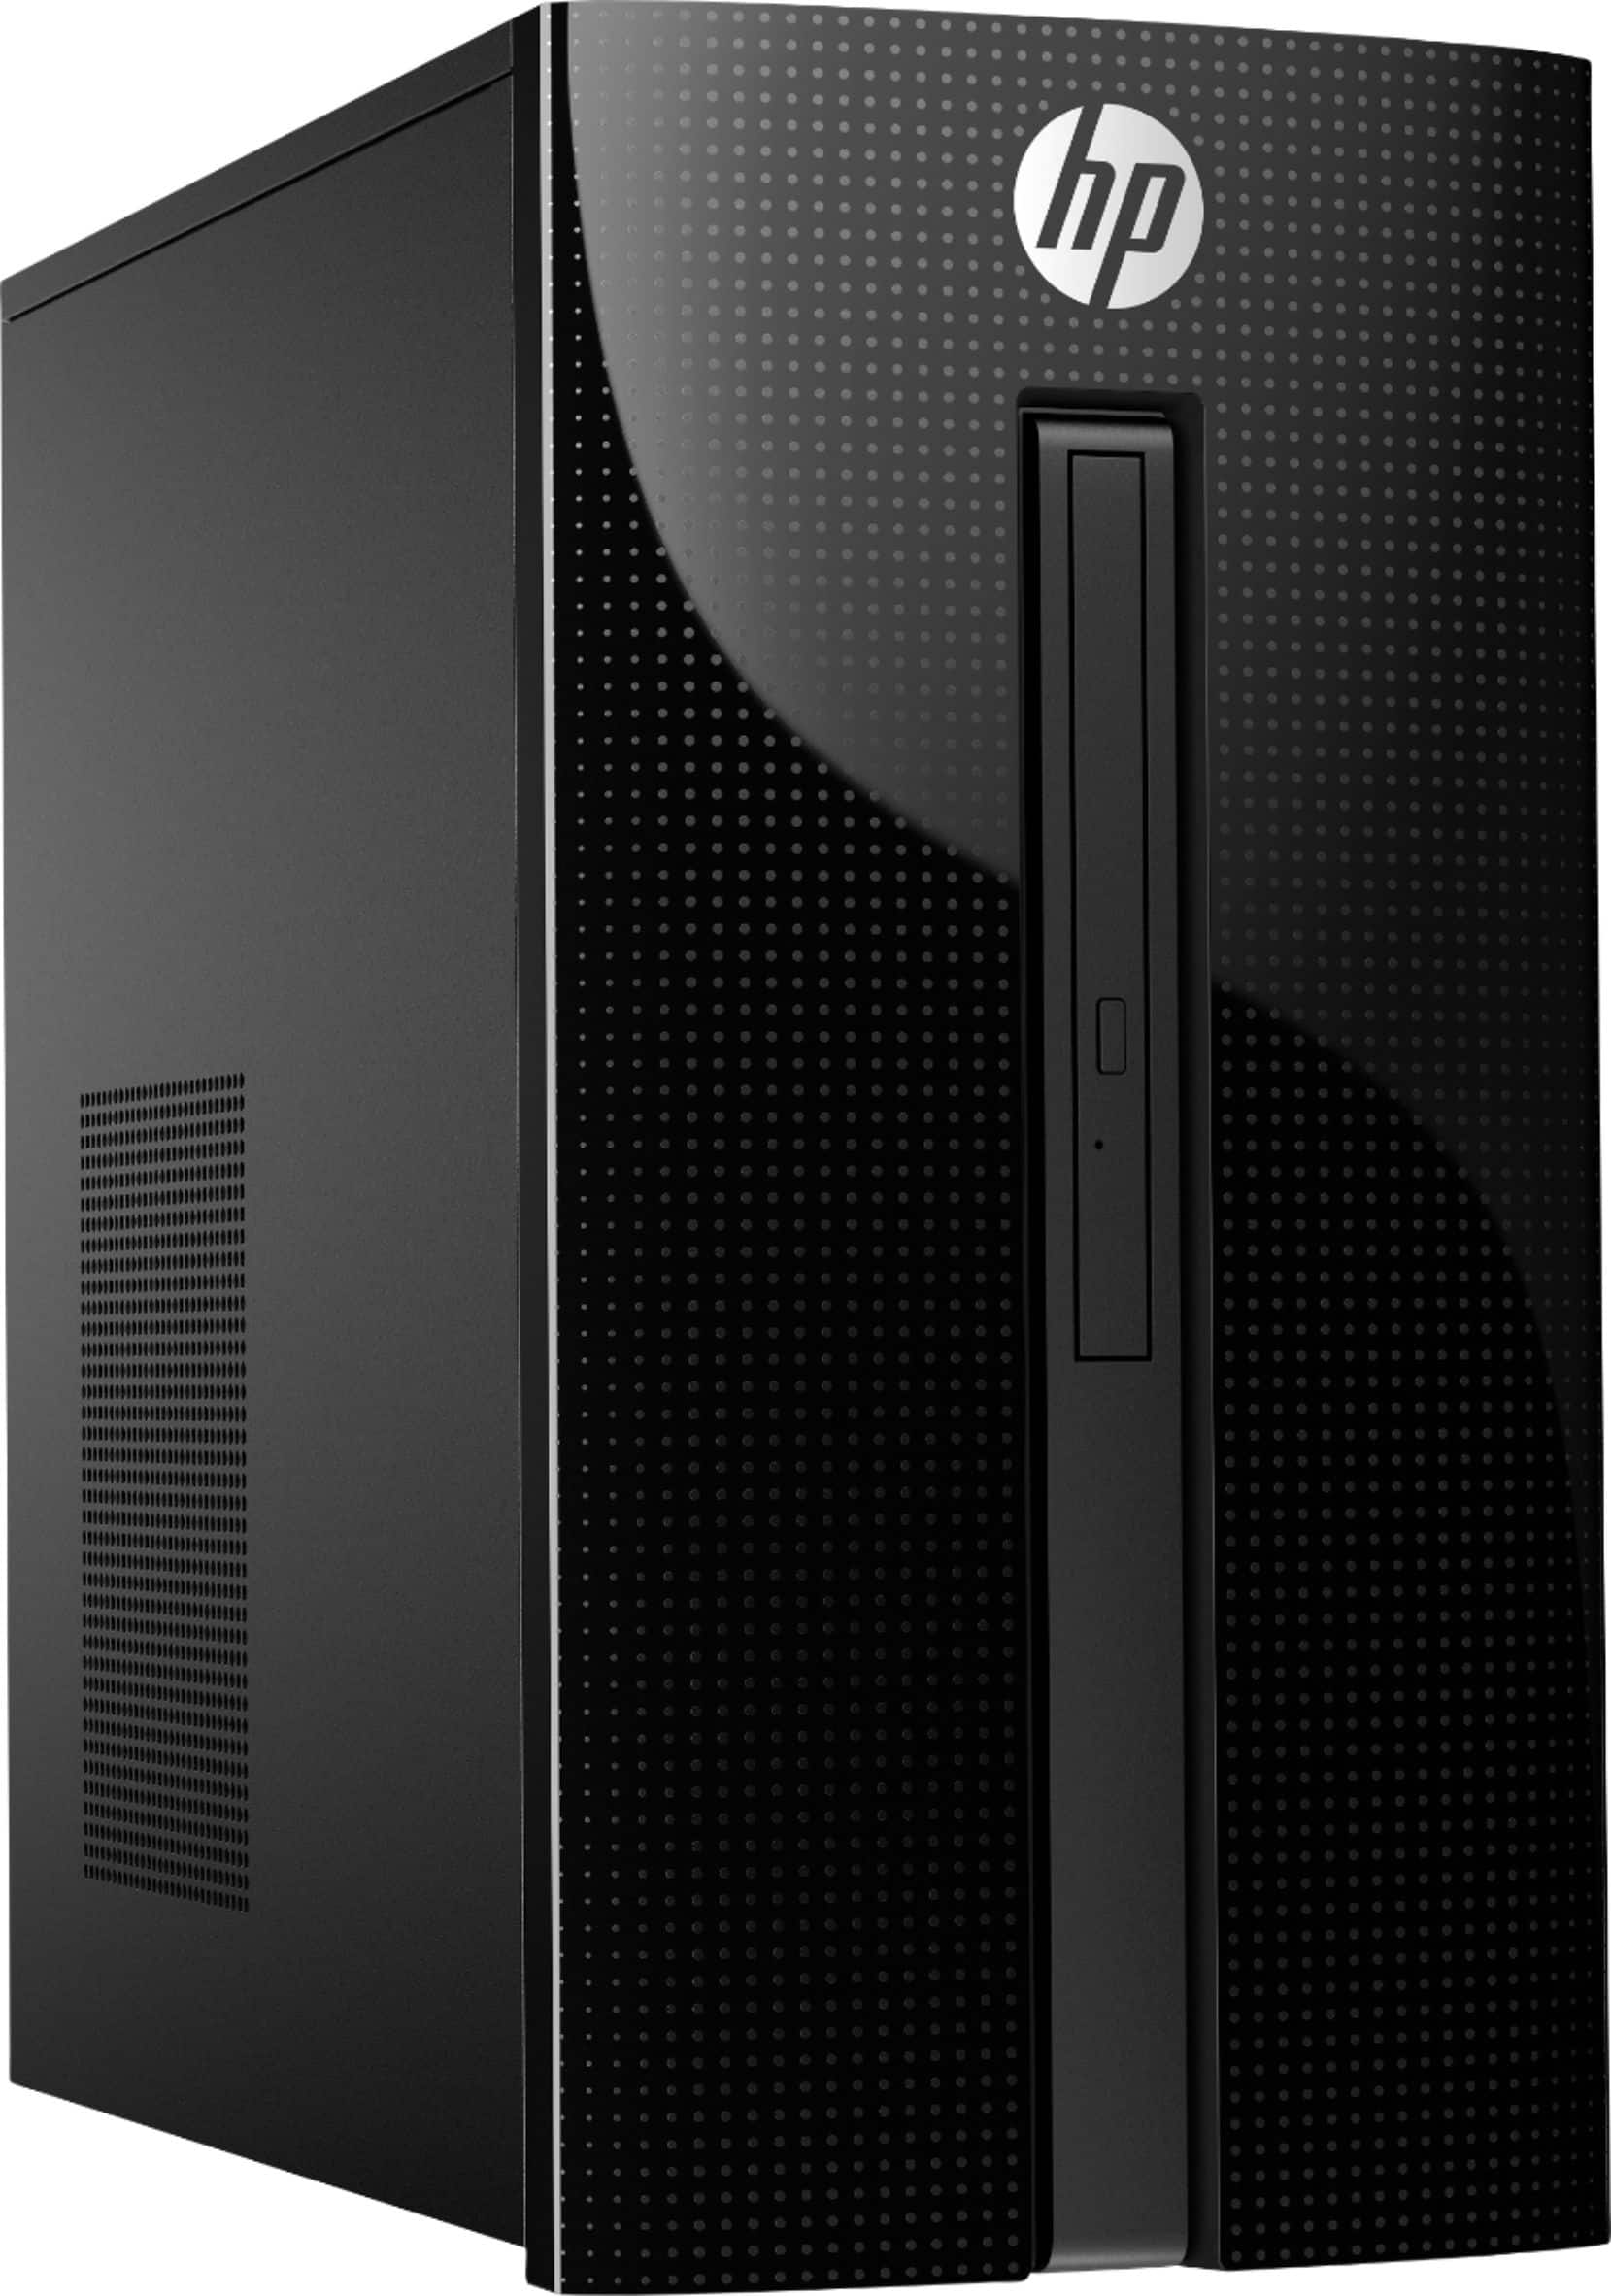 Miraculous Hp Desktop Intel Core I7 8Gb Memory 1Tb Hard Drive Black 460 Interior Design Ideas Tzicisoteloinfo